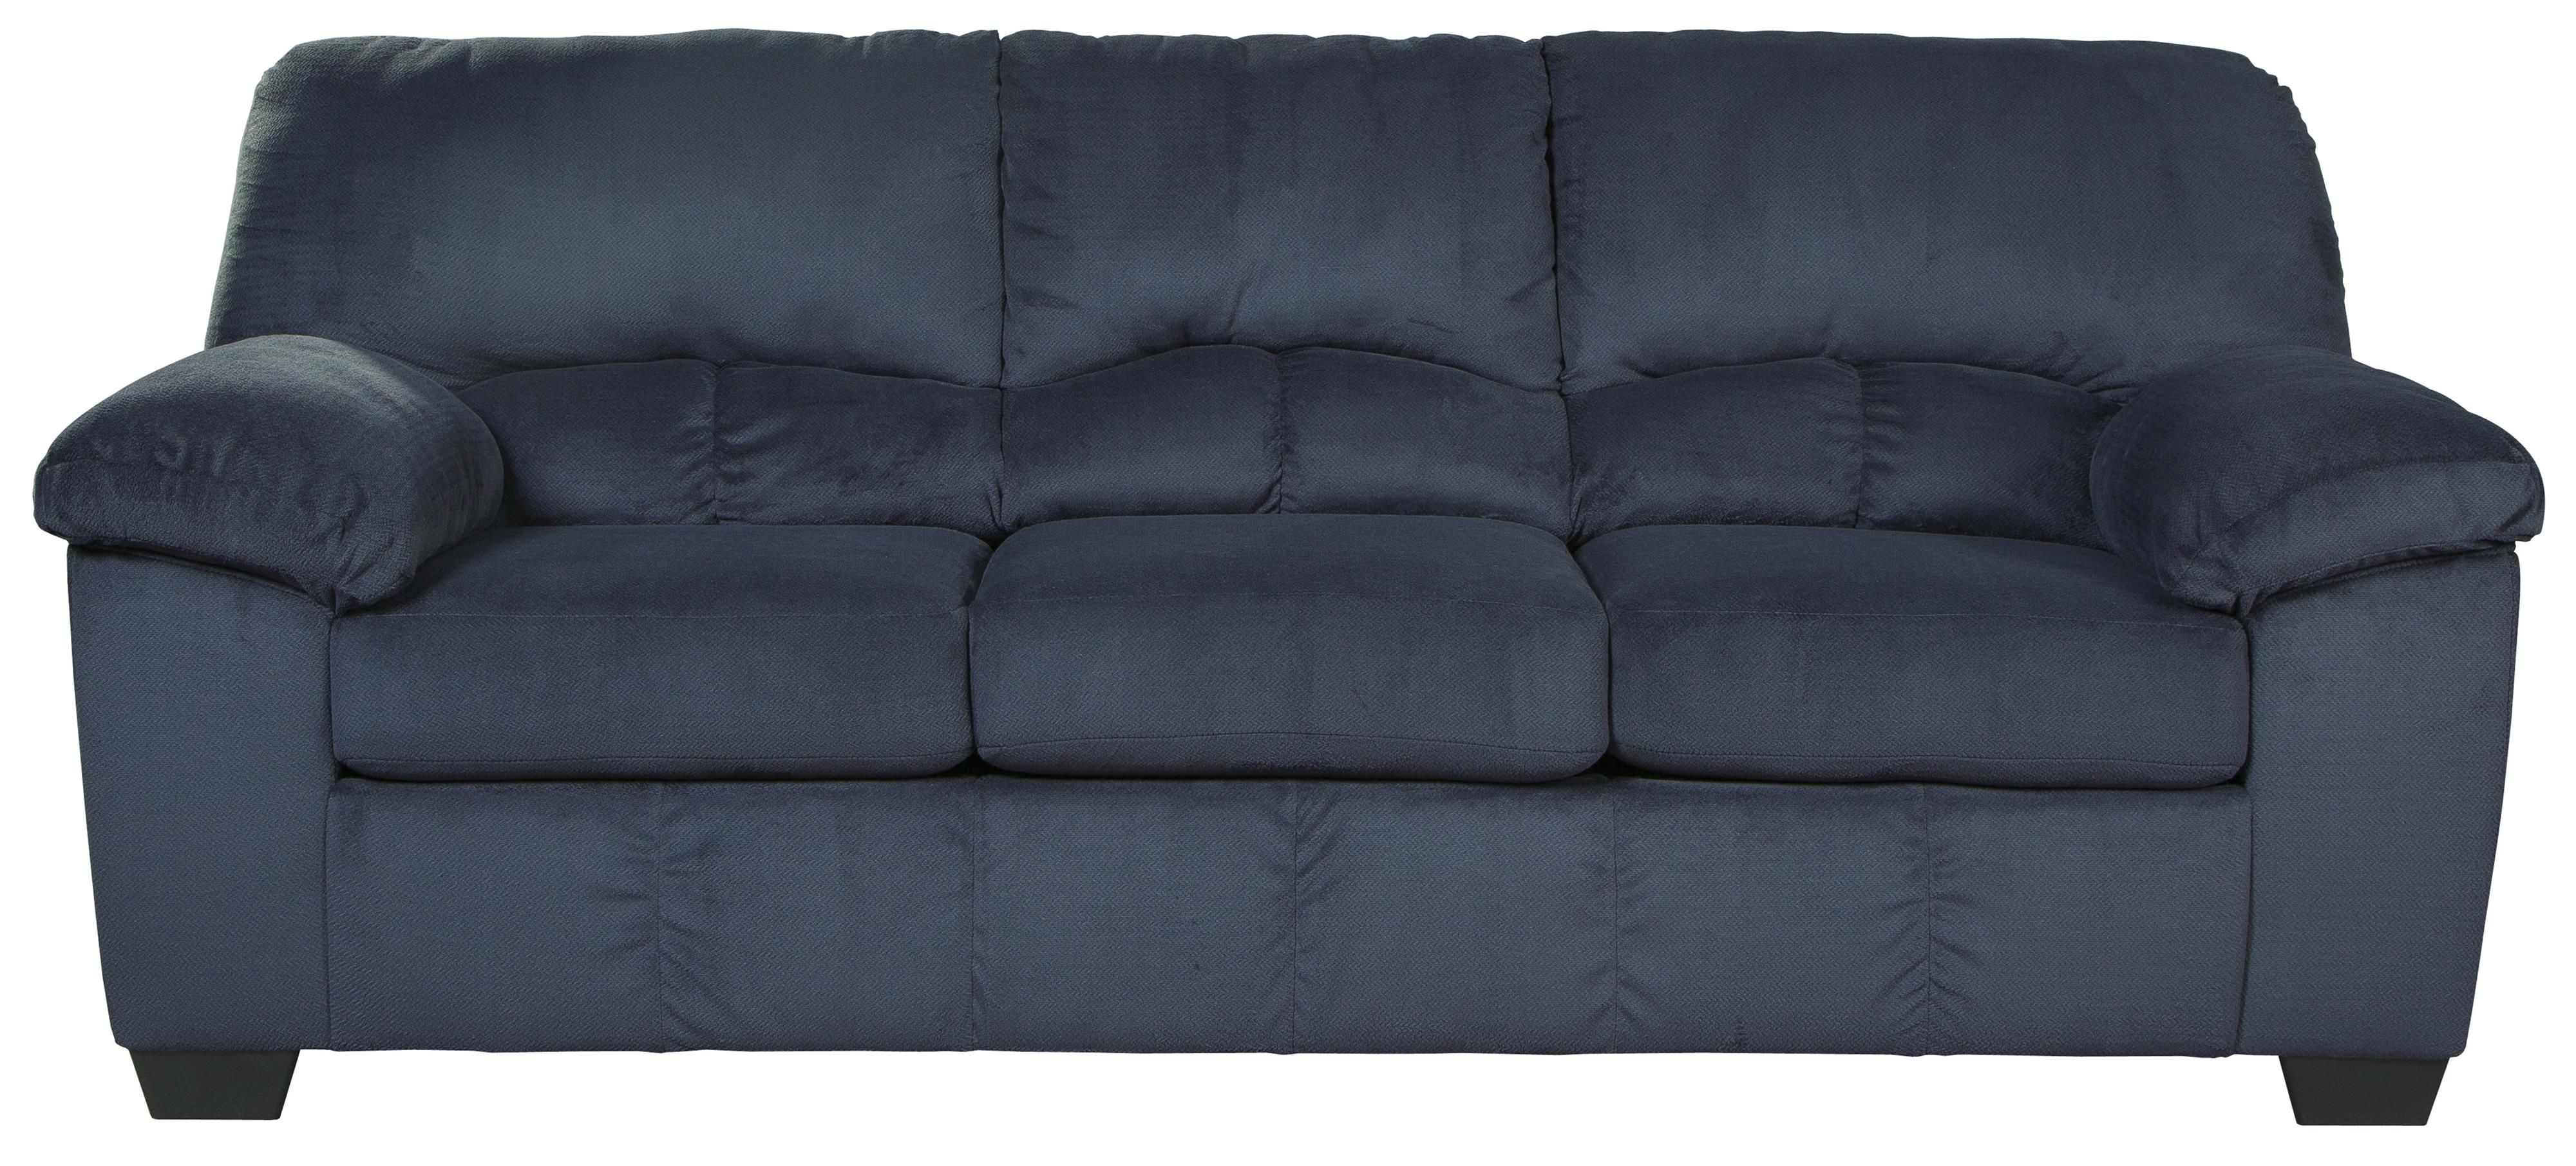 Signature Design by Ashley Dailey Full Sofa Sleeper - Item Number: 9540236